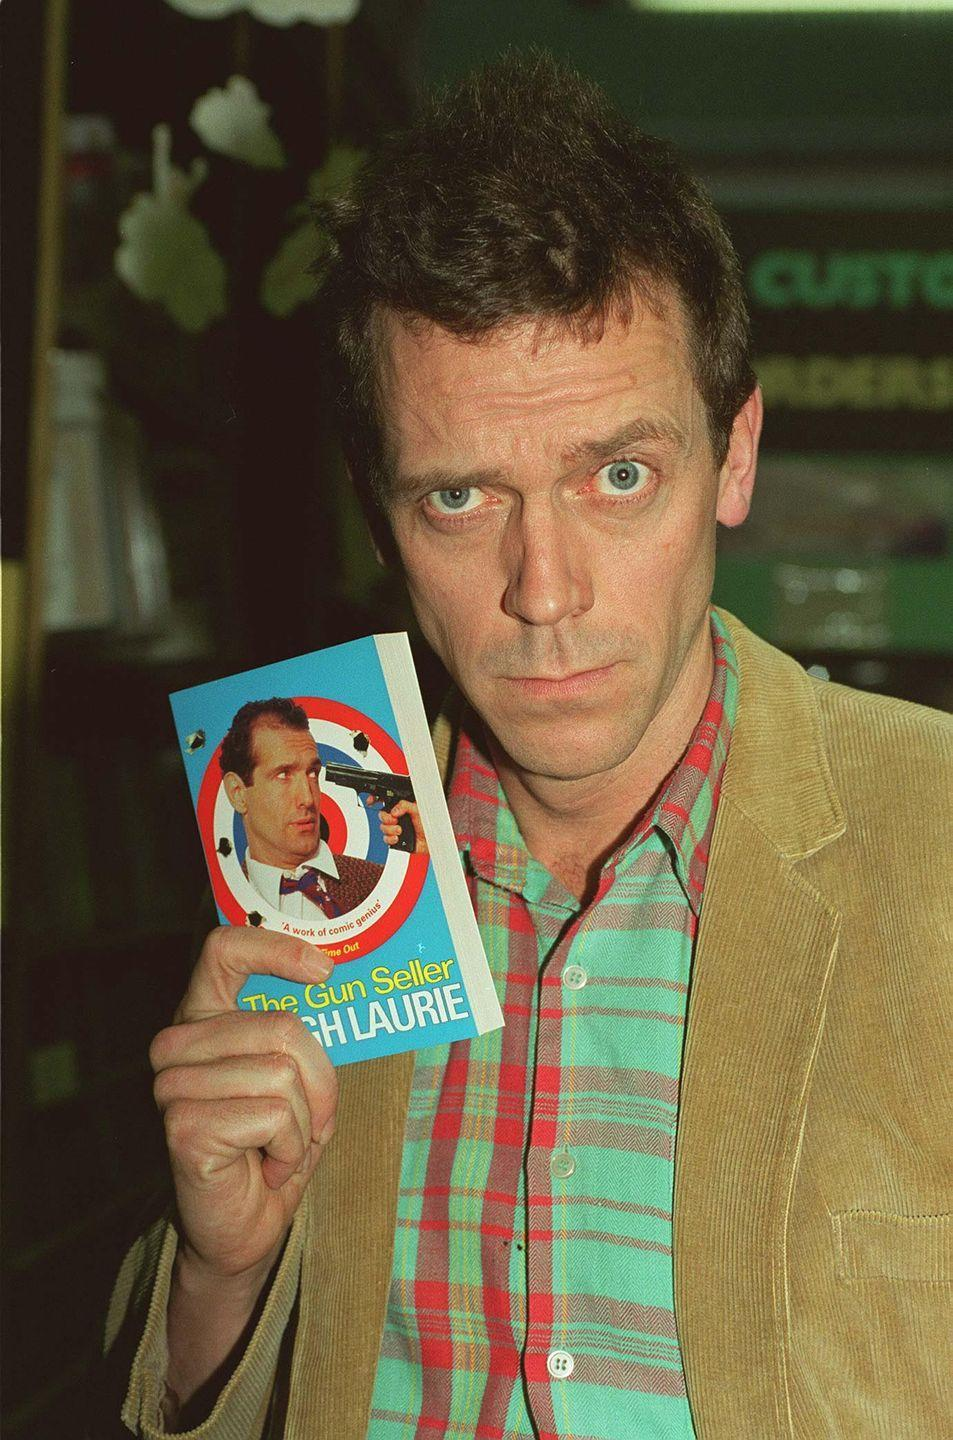 """<p>PSA for anyone who wasn't already in the know: Hugh Laurie is funny. While many fans these days know him as the crotchety Dr. House, Hugh was one half of the comedy duo Fry and Laurie (with fellow British comedian Stephen Fry). The Golden Globe winner tapped into his satirical side for his first novel in 1996, <em>The Gun Seller. </em></p><p><a href=""""https://www.publishersweekly.com/978-1-56947-087-9"""" rel=""""nofollow noopener"""" target=""""_blank"""" data-ylk=""""slk:Publishers Weekly"""" class=""""link rapid-noclick-resp"""">Publishers Weekly</a> referred how Hugh portrays the spy thriller genre as the equivalent of Douglas Adams's take on science fiction with <em>A Hitchhiker's Guide to the Galaxy</em>. </p><p>There's also a story that <em>The Night Manager</em> star initially submitted the manuscript under a pseudonym.</p><p><a class=""""link rapid-noclick-resp"""" href=""""https://www.amazon.com/Gun-Seller-Hugh-Laurie-2004-10-07/dp/B017MYSYIQ/ref=pd_lpo_14_img_0/138-4338020-7856400?_encoding=UTF8&pd_rd_i=B017MYSYIQ&pd_rd_r=f0872f1e-397d-452a-a58d-04b2ae2fcbef&pd_rd_w=shf0L&pd_rd_wg=zd8u2&pf_rd_p=7b36d496-f366-4631-94d3-61b87b52511b&pf_rd_r=HV0A18MKPQGD0X1AQVH5&psc=1&refRID=HV0A18MKPQGD0X1AQVH5&tag=syn-yahoo-20&ascsubtag=%5Bartid%7C2140.g.33987725%5Bsrc%7Cyahoo-us"""" rel=""""nofollow noopener"""" target=""""_blank"""" data-ylk=""""slk:Buy the Book"""">Buy the Book</a></p>"""